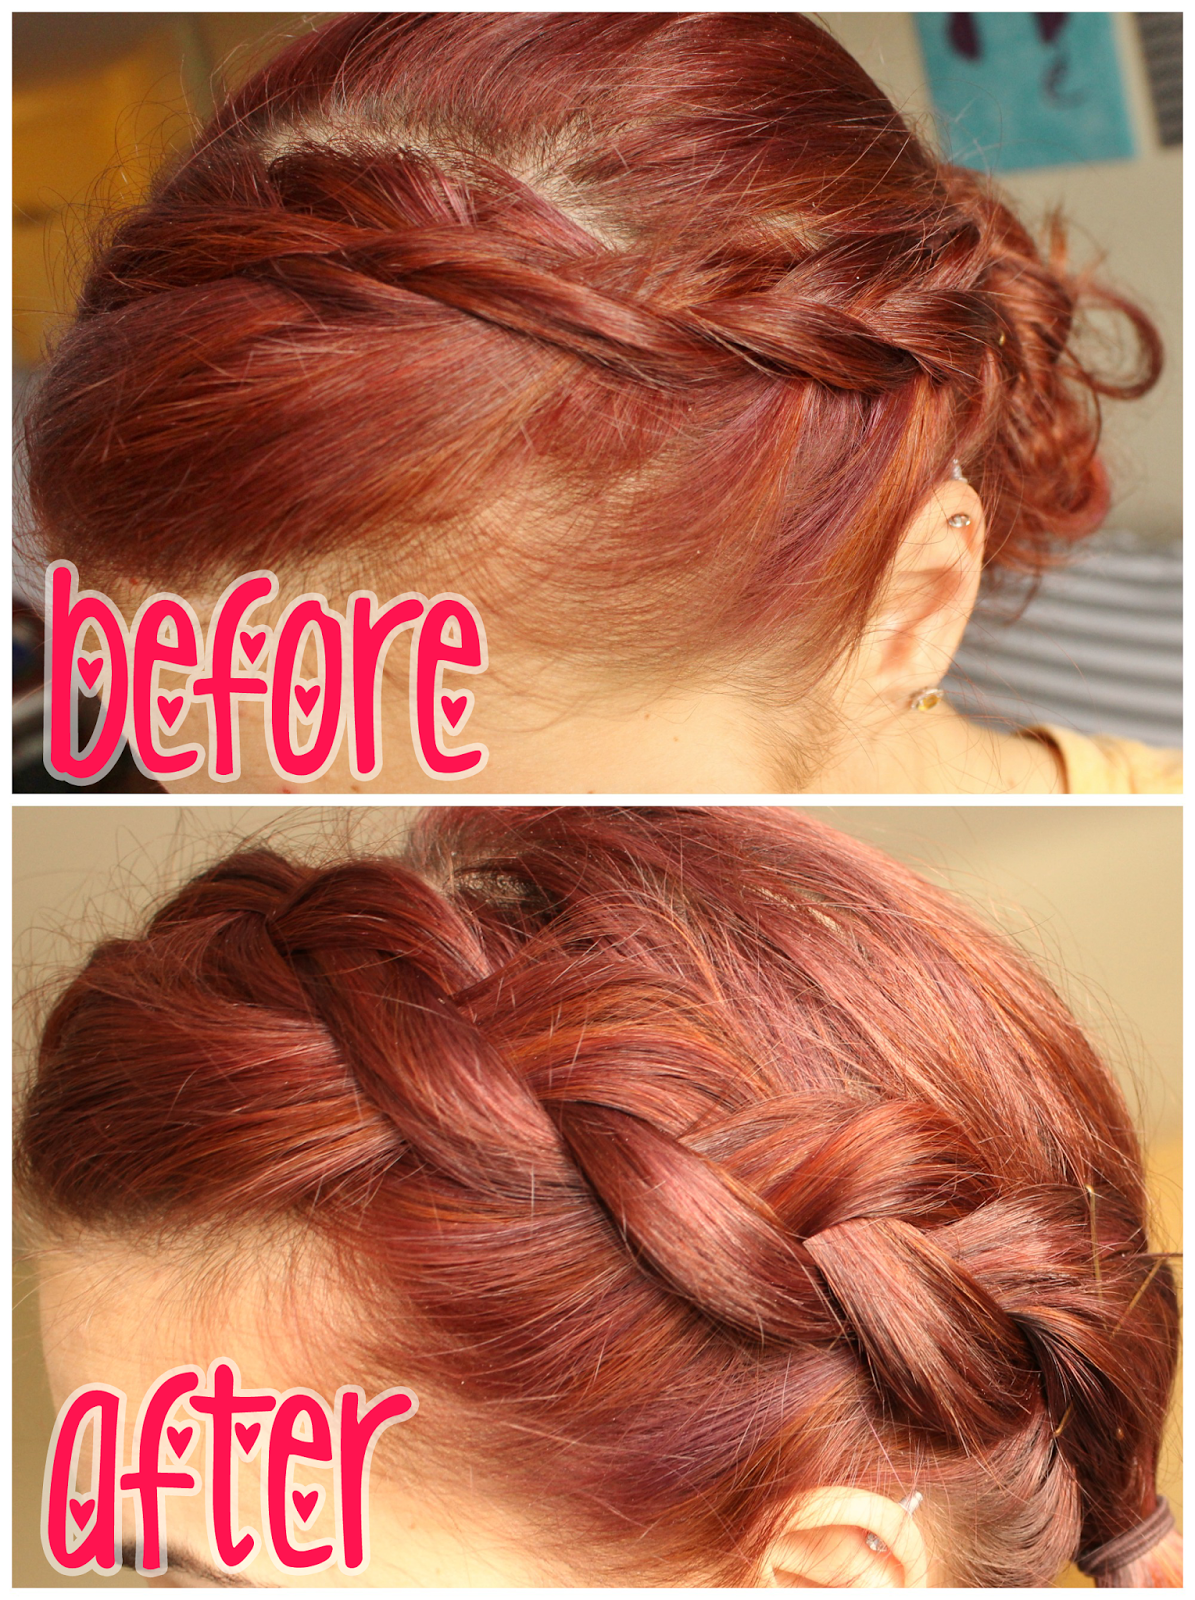 How To: Get A Thick Bohemian Braid  Even If You Have Thin Hair!